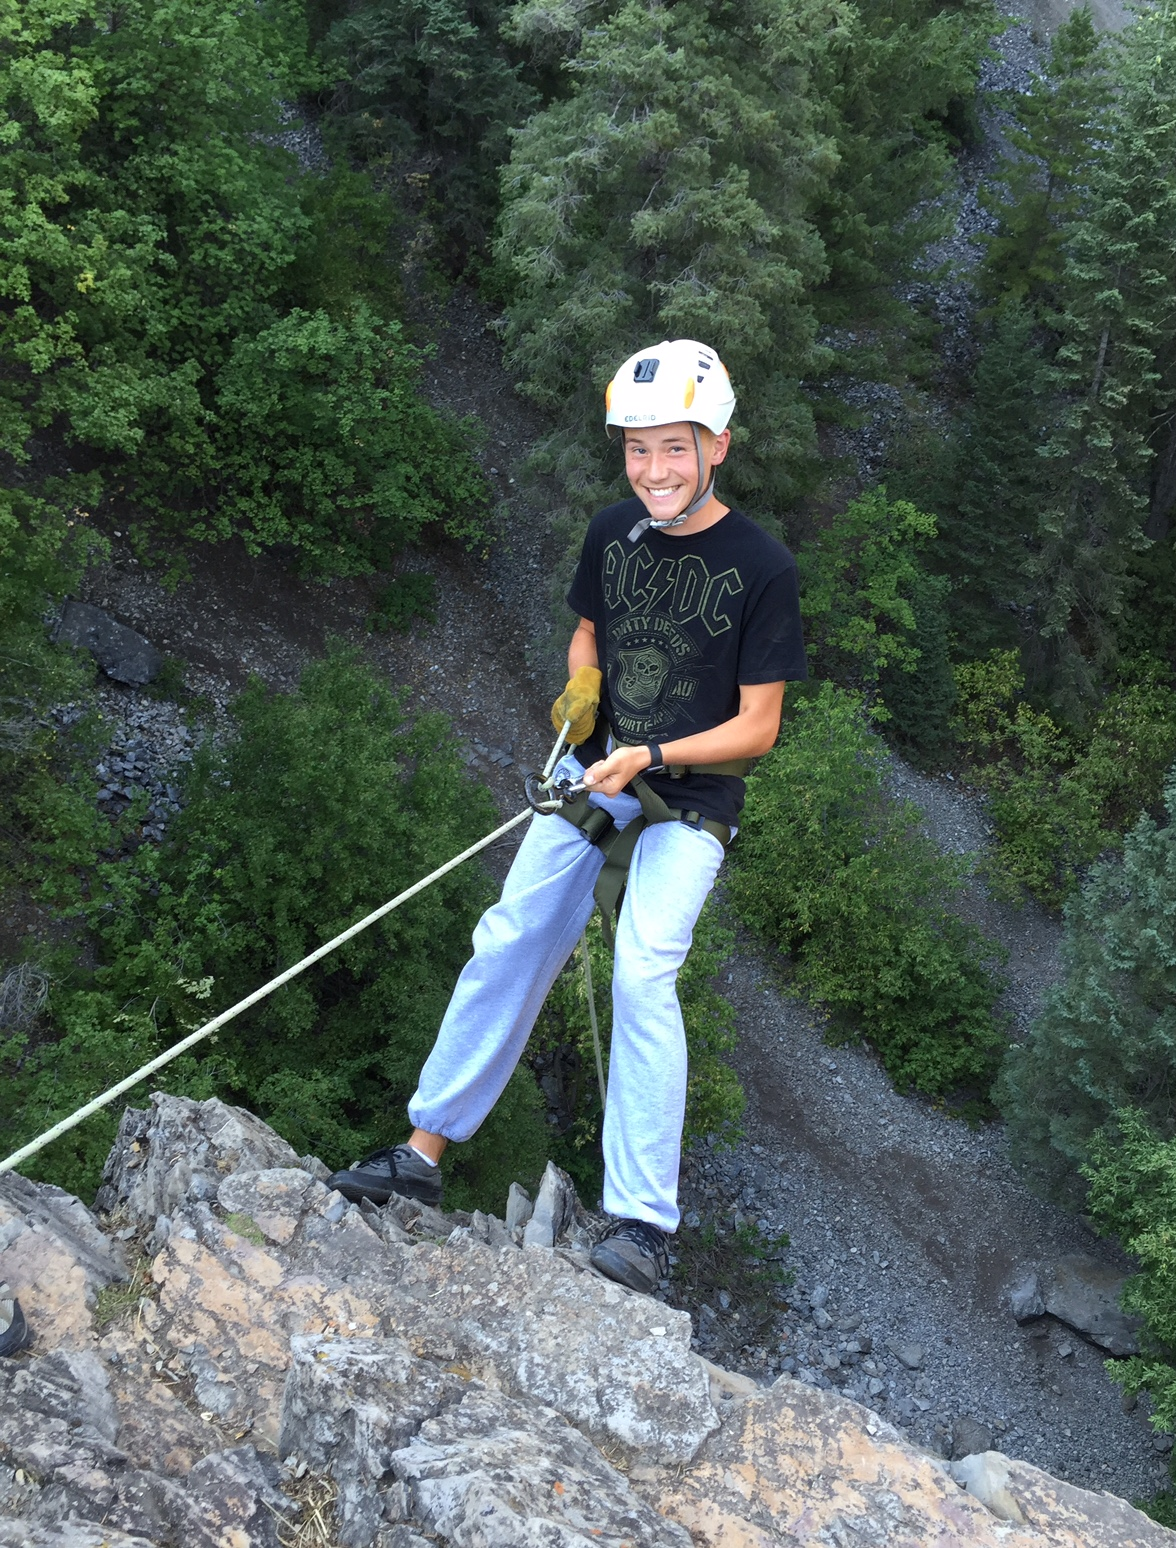 Zach repelling edited.jpeg